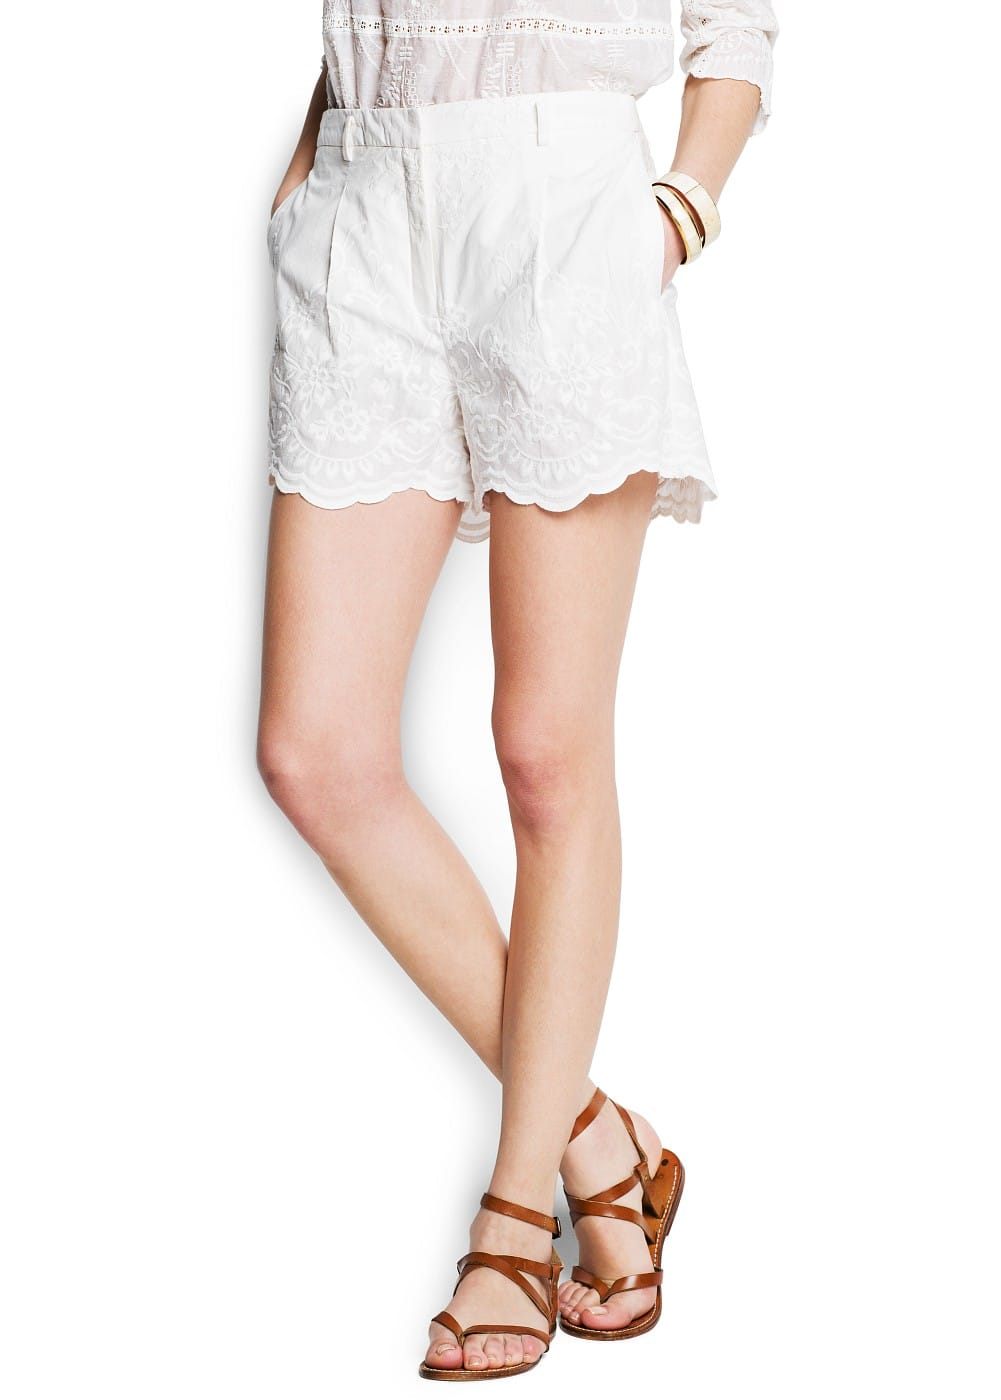 Cotton embroidered high-waist shorts